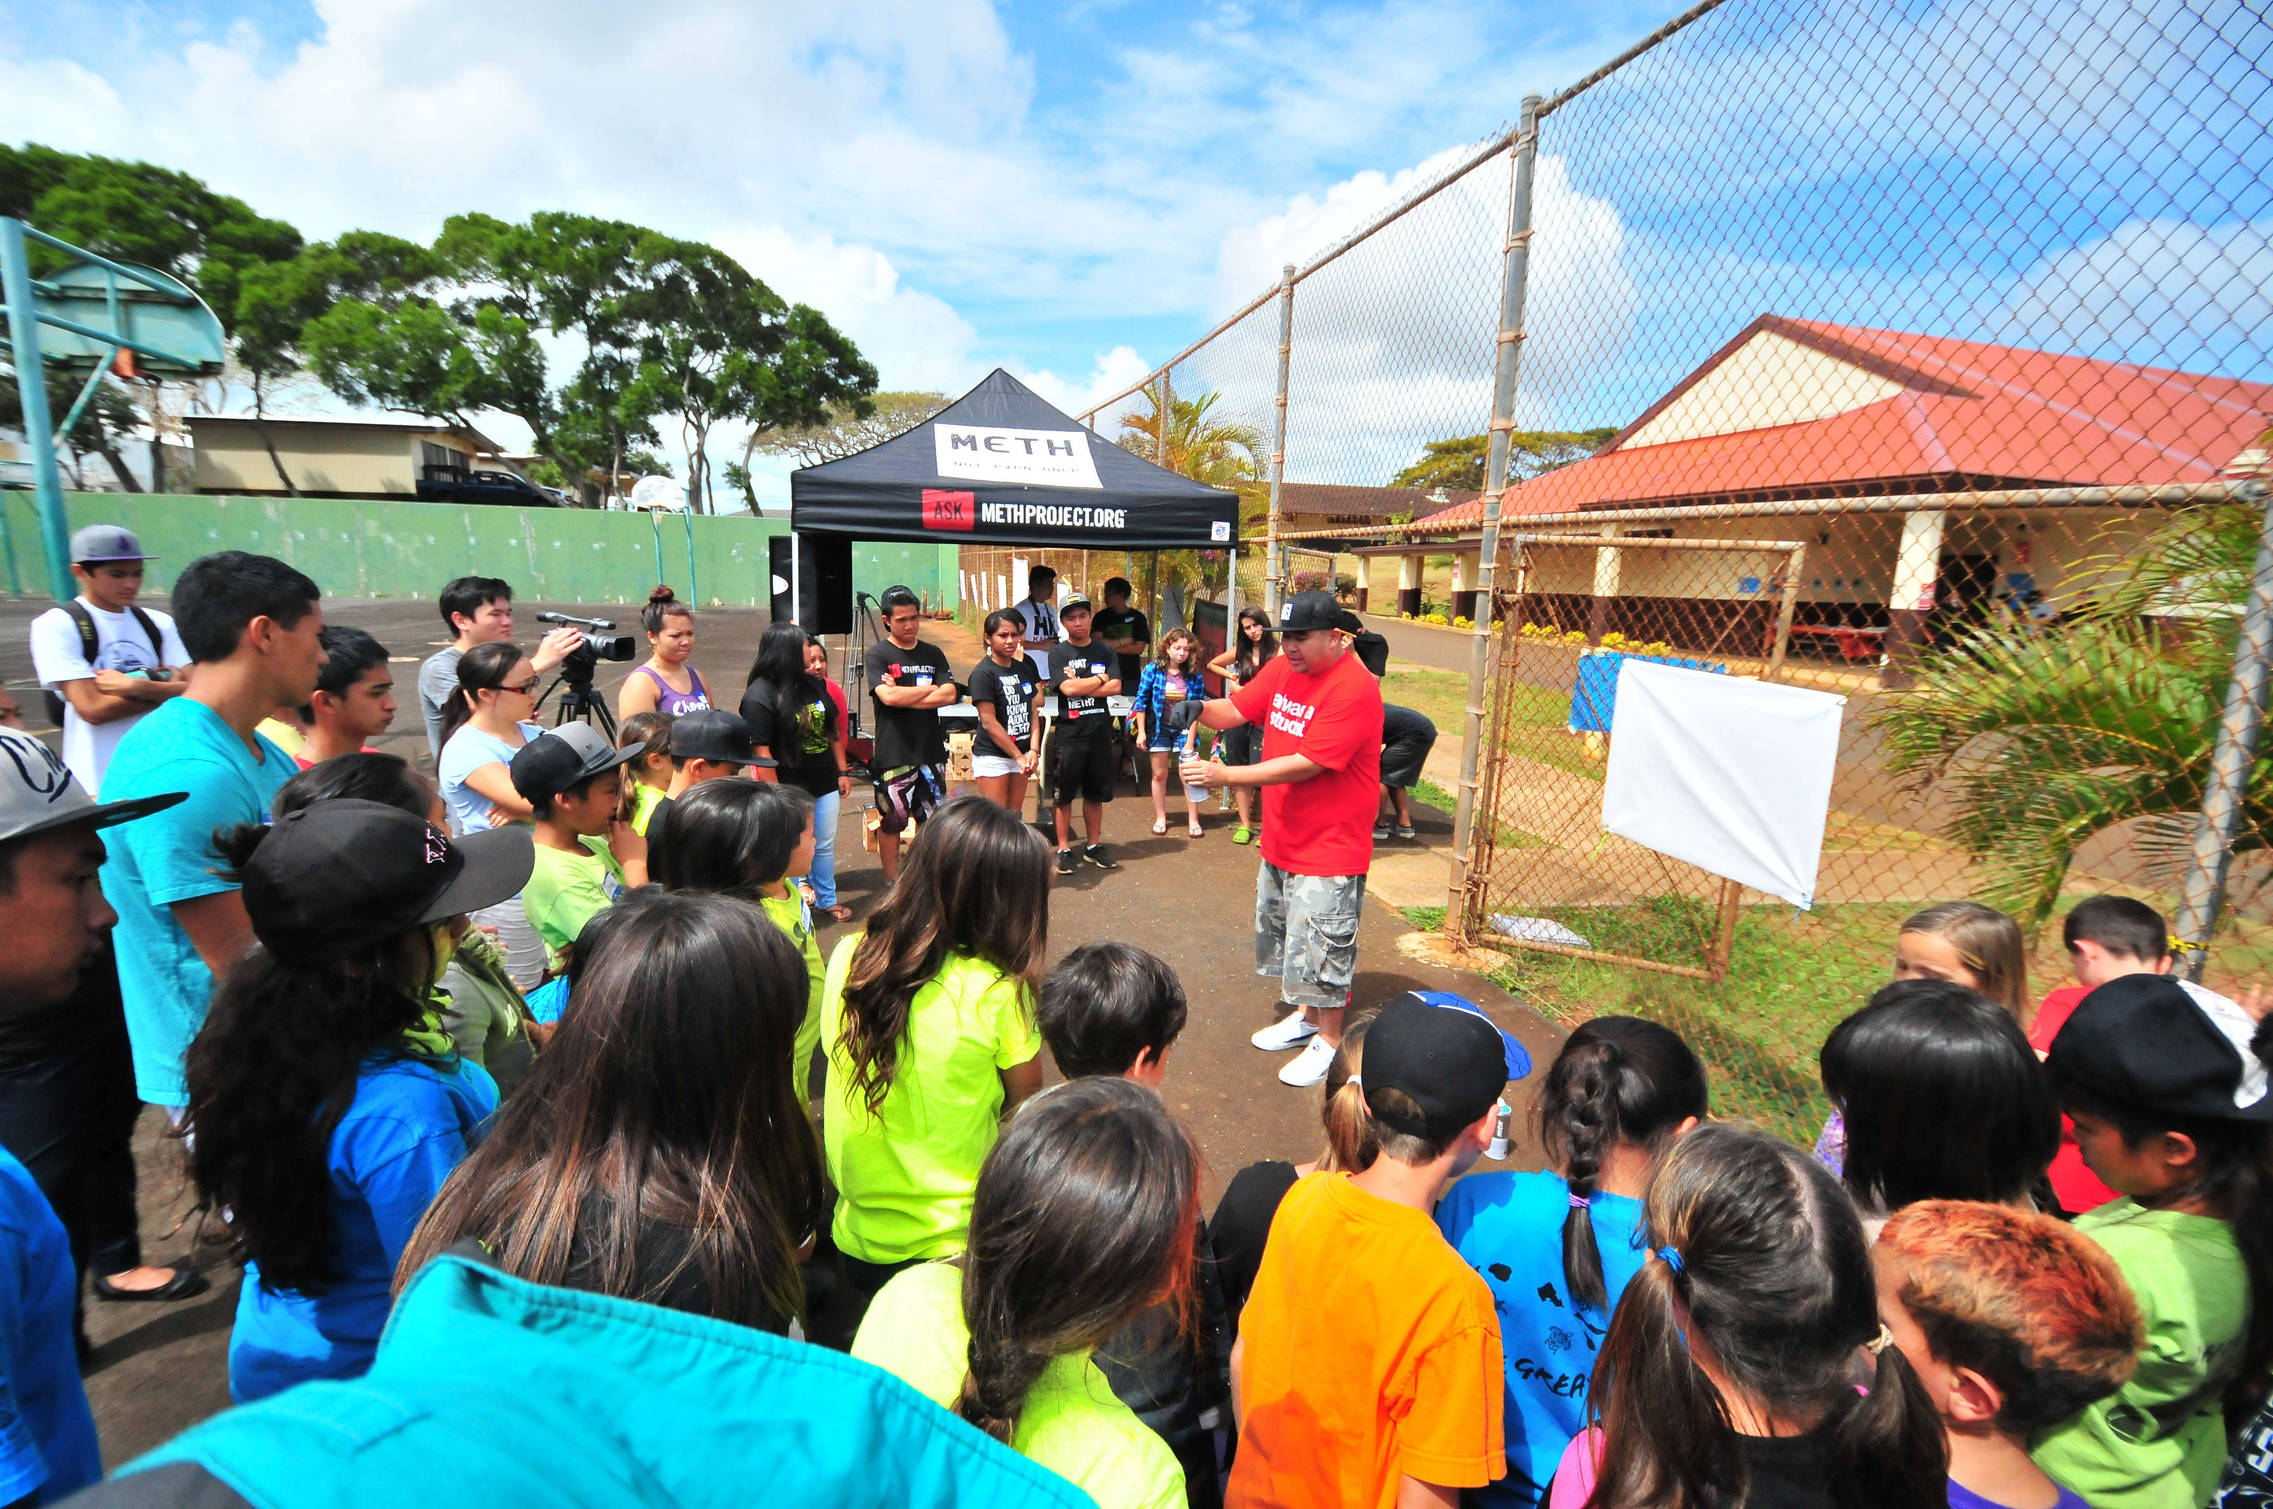 Middle and high school students from Kauai gather for a workshop on aerosol art, led by world-renowned artist, East3